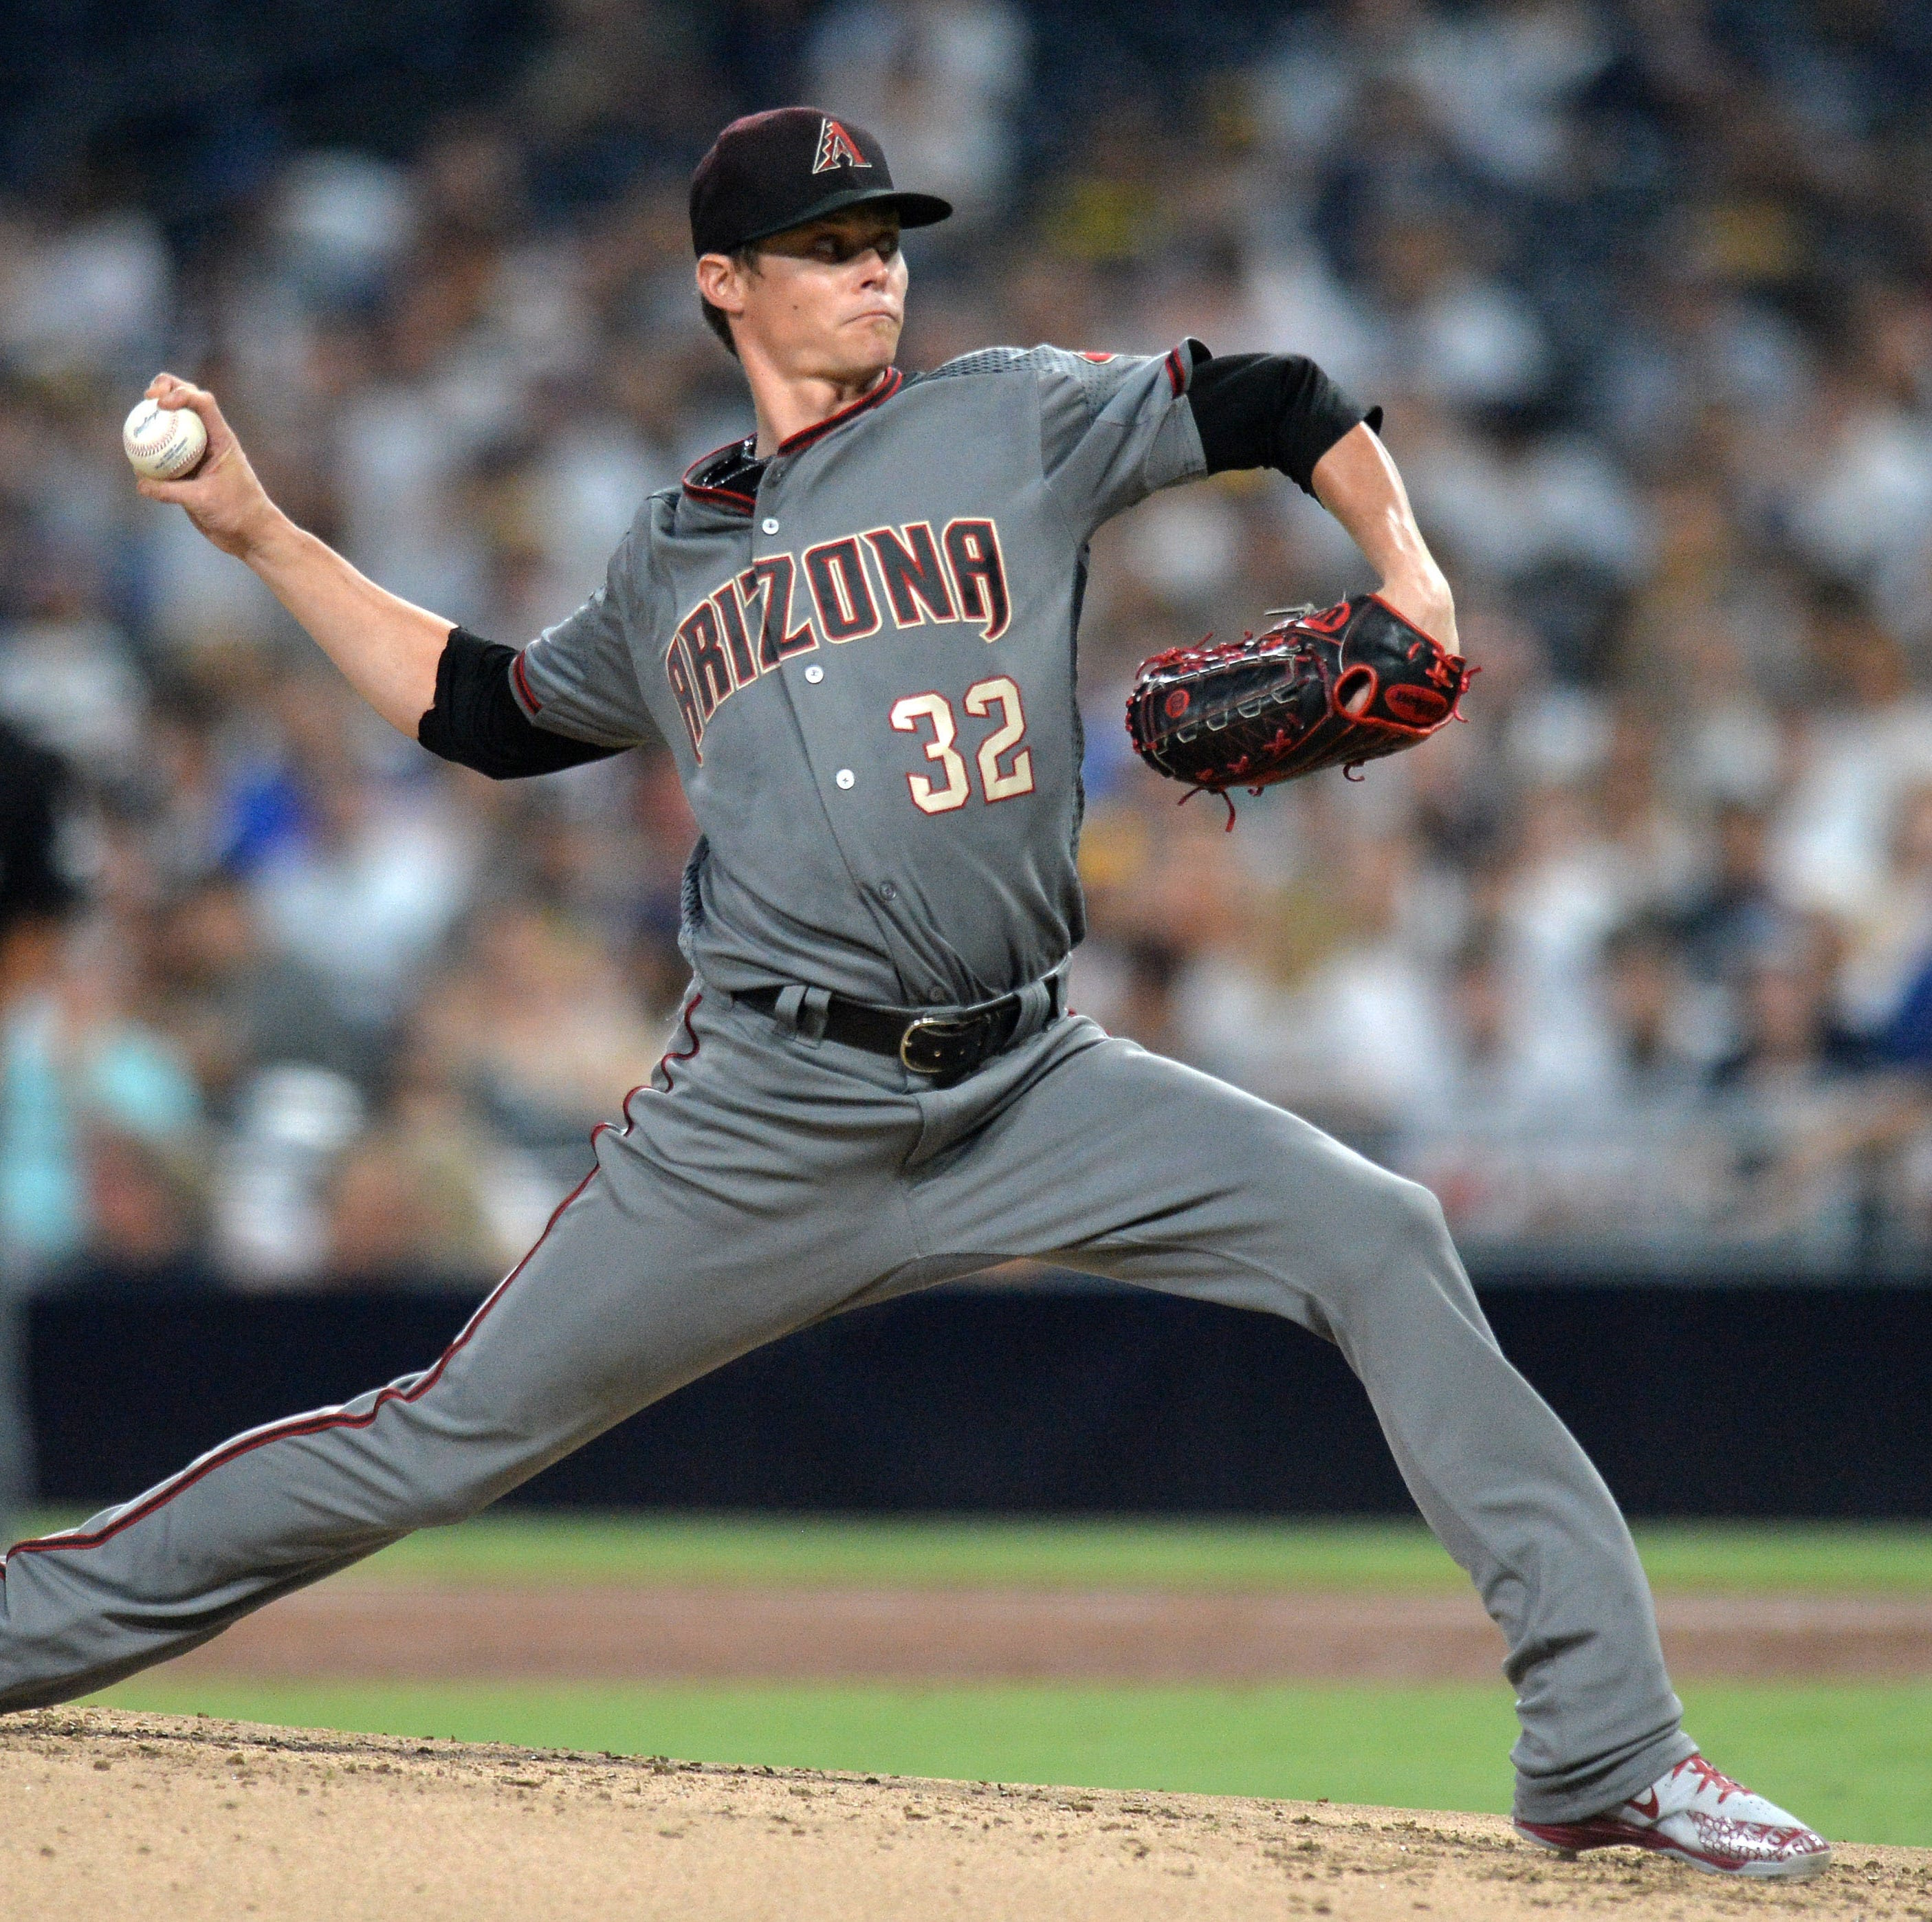 Diamondbacks' Clay Buchholz fires first complete game since 2015 in win vs. Padres